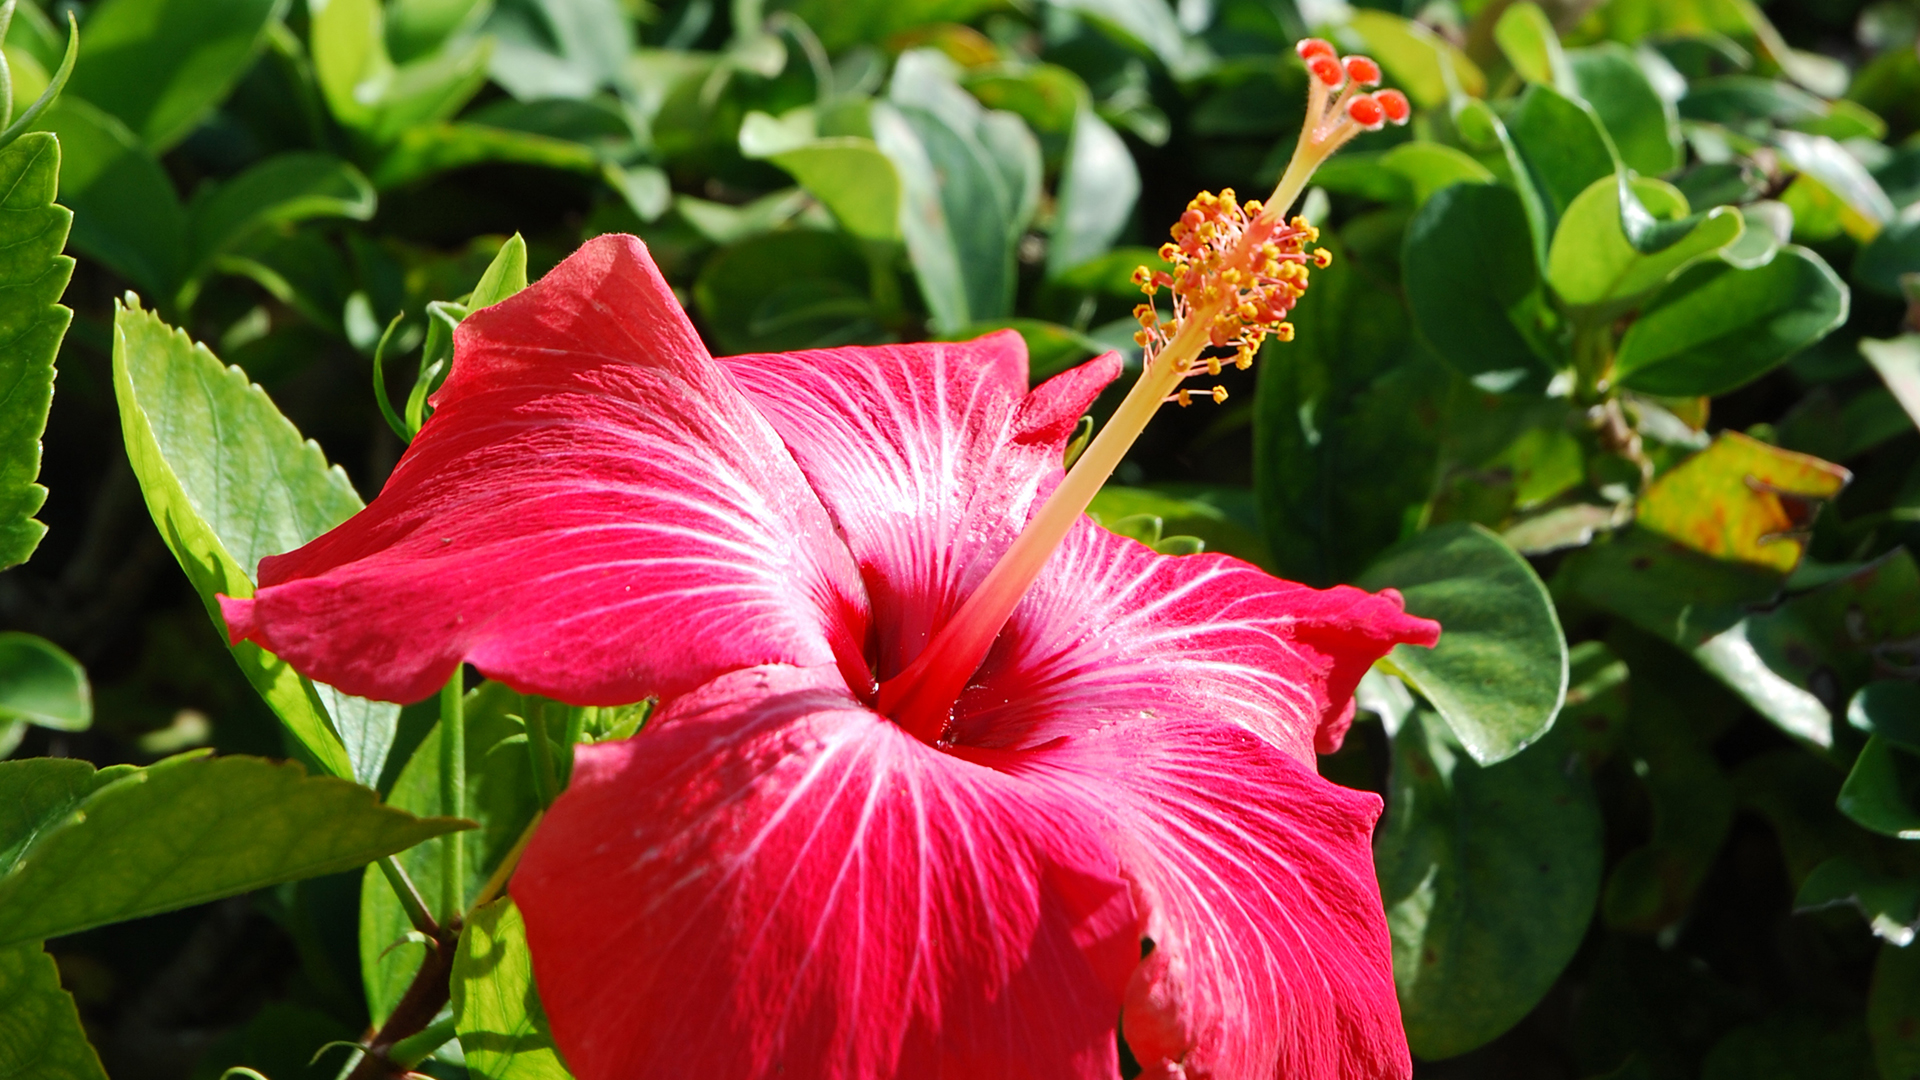 Hibiscus San Diego Zoo Animals Plants